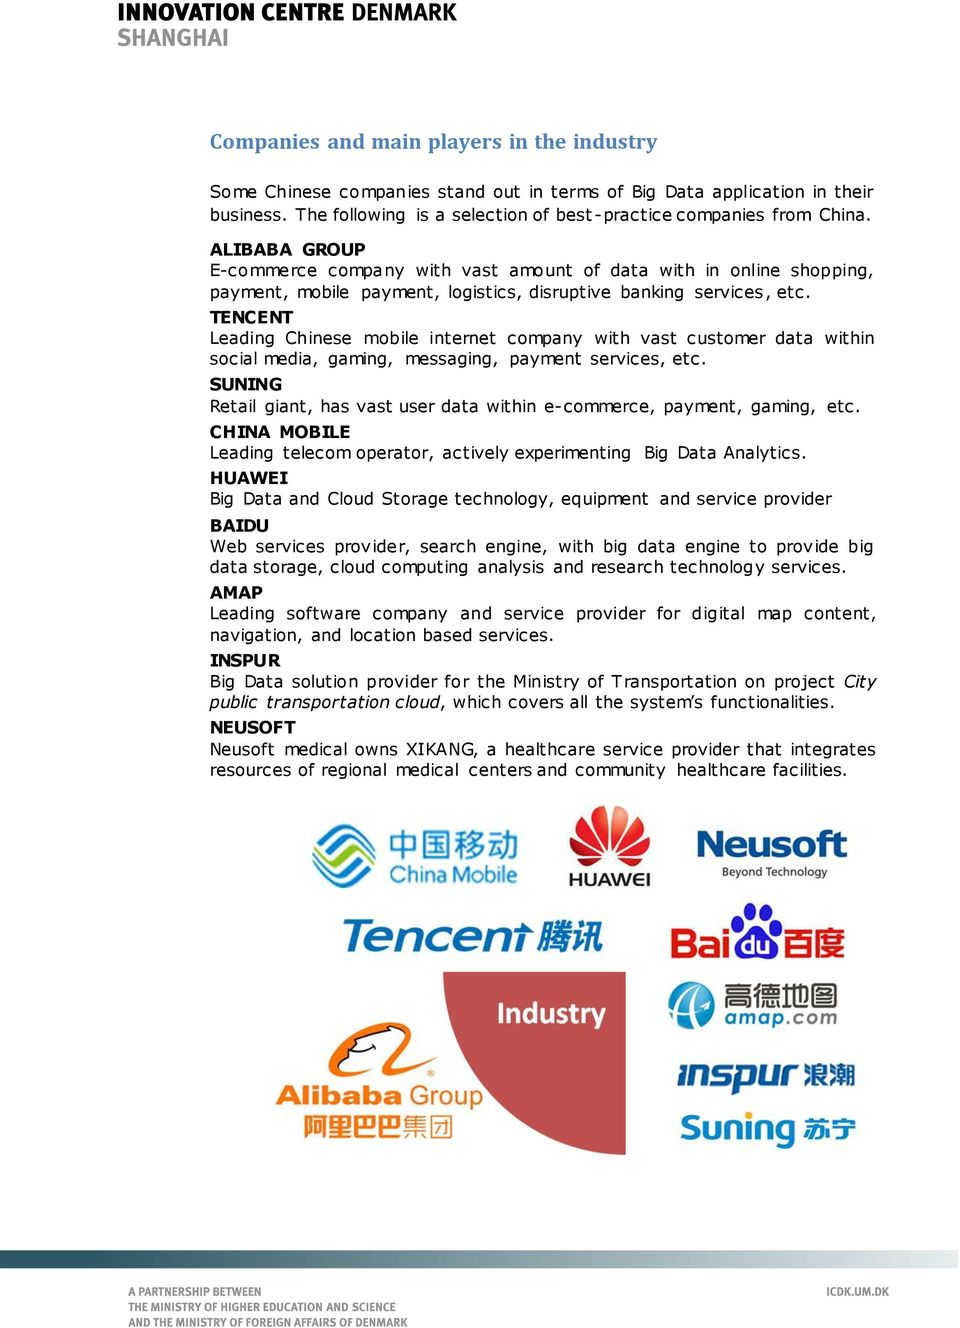 TENCENT Leading Chinese mobile internet company with vast customer data within social media, gaming, messaging, payment services, etc.